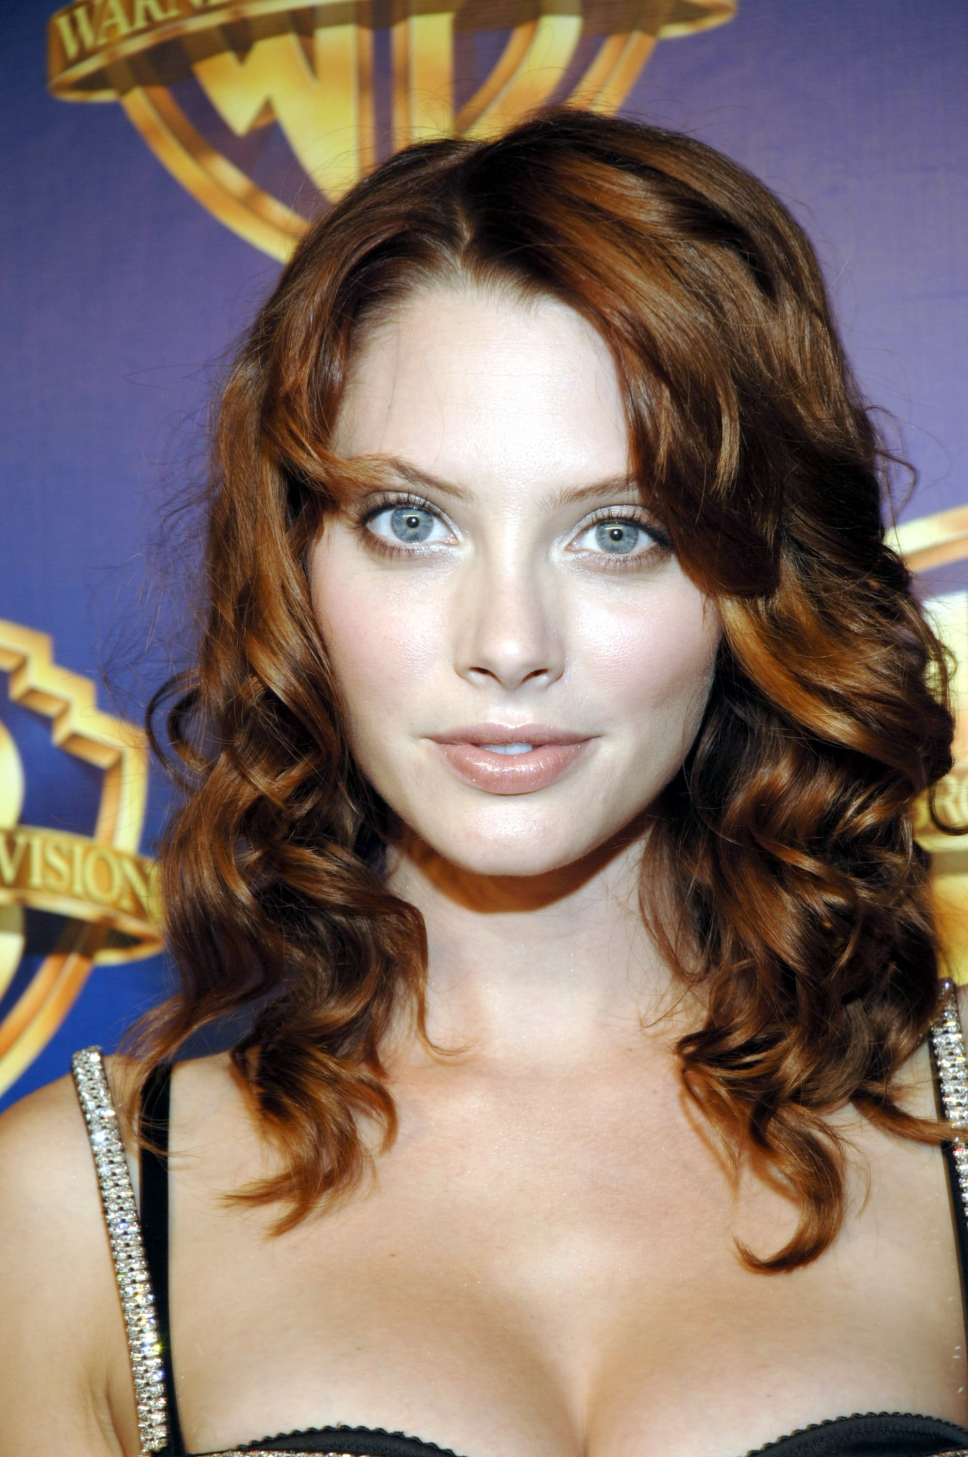 April Bowlby nudes (75 foto) Porno, Twitter, swimsuit